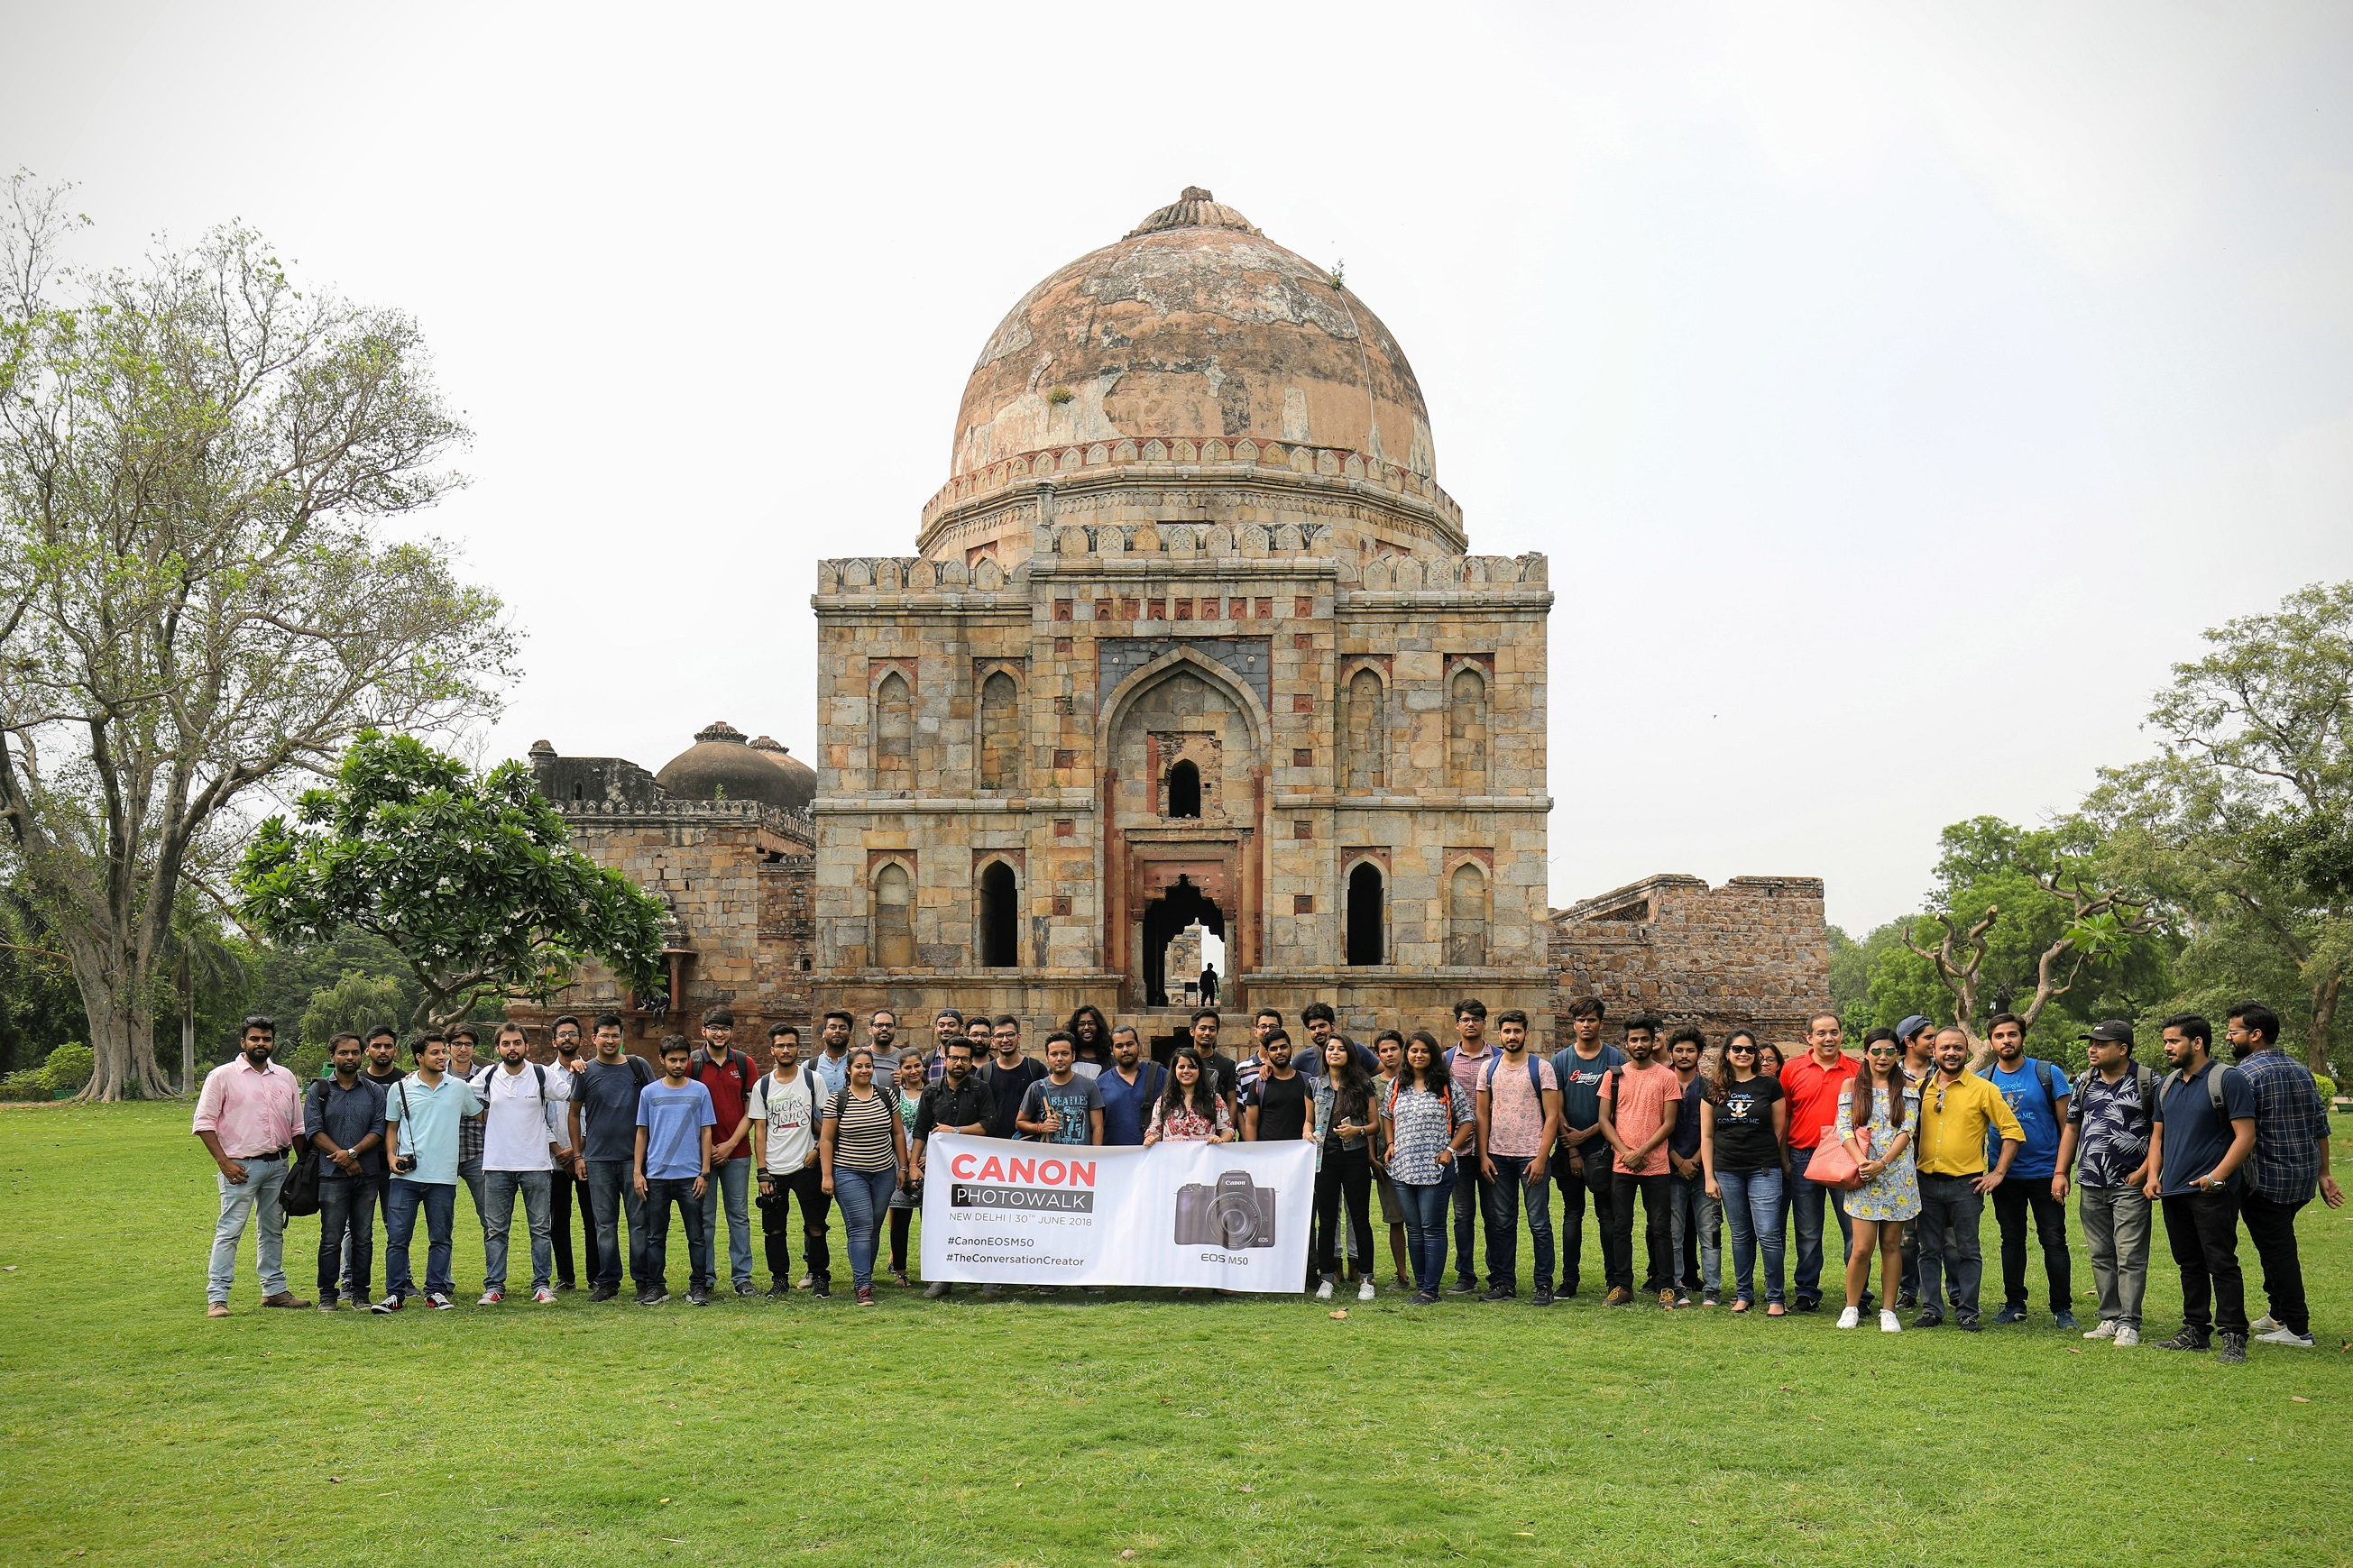 Canon India marks 'World Photography Day' celebrations, promoting the culture of imaging across the country